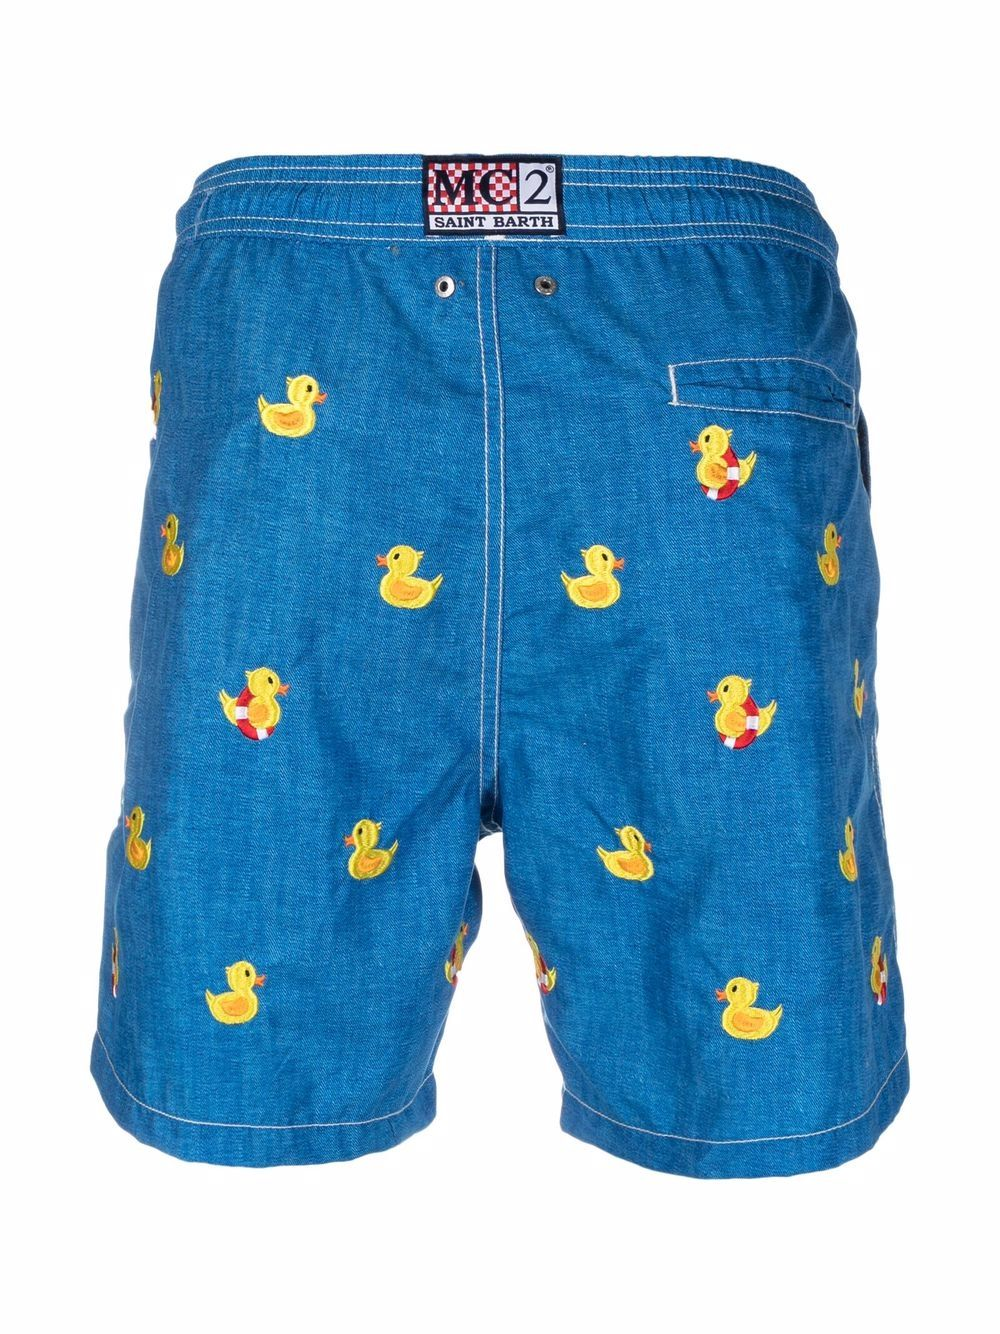 Denim blue and yellow embroidered-duck swim shorts MC2      GUSTAVIA EMBROIDERY-DONALD LOOKLIN61